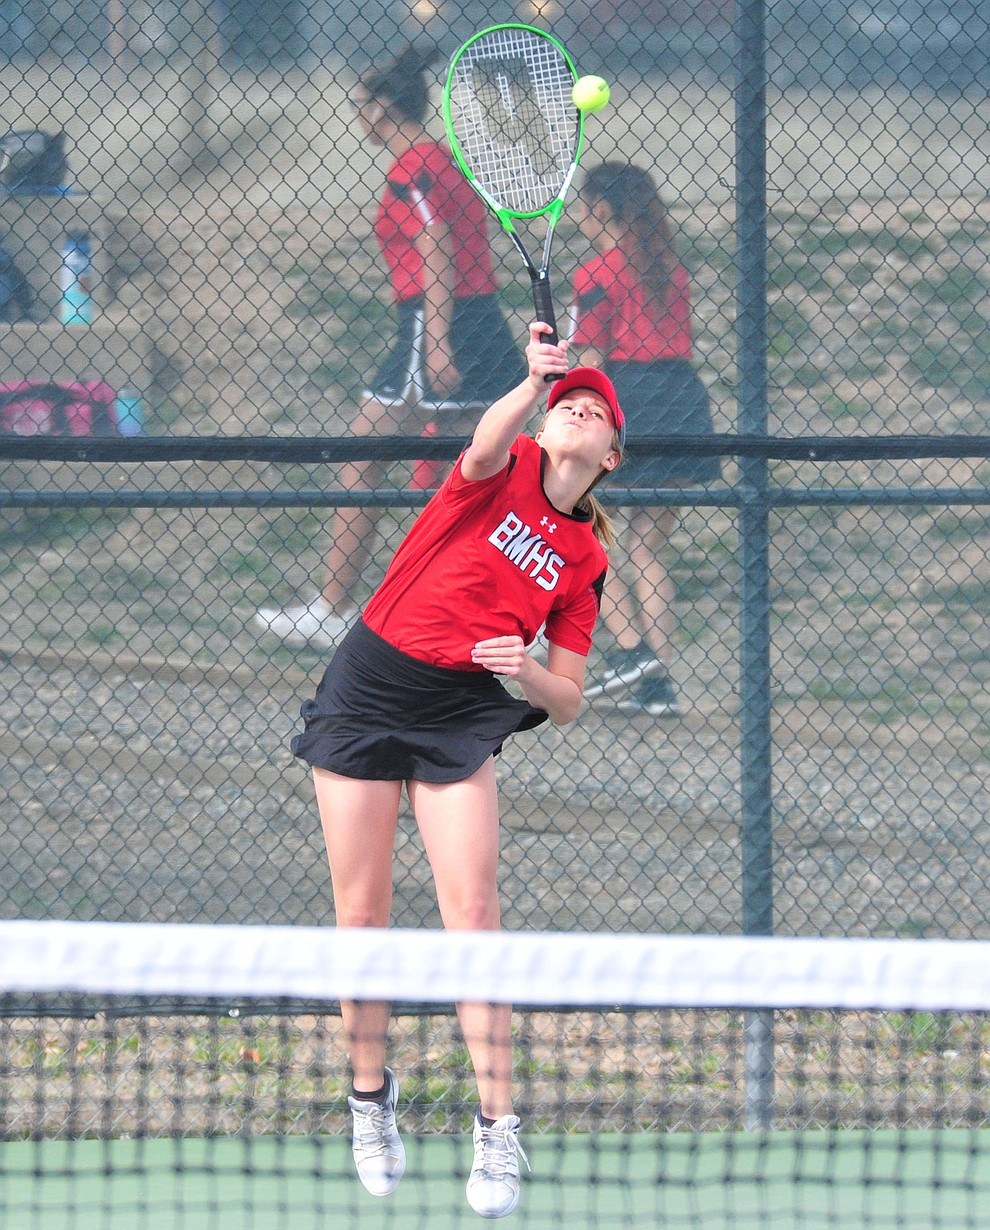 Bradshaw Mountain's Brinlee Kidd serves as the Bears traveled to Prescott for a girls tennis matchup Tuesday, March 26. (Les Stukenberg/Courier)